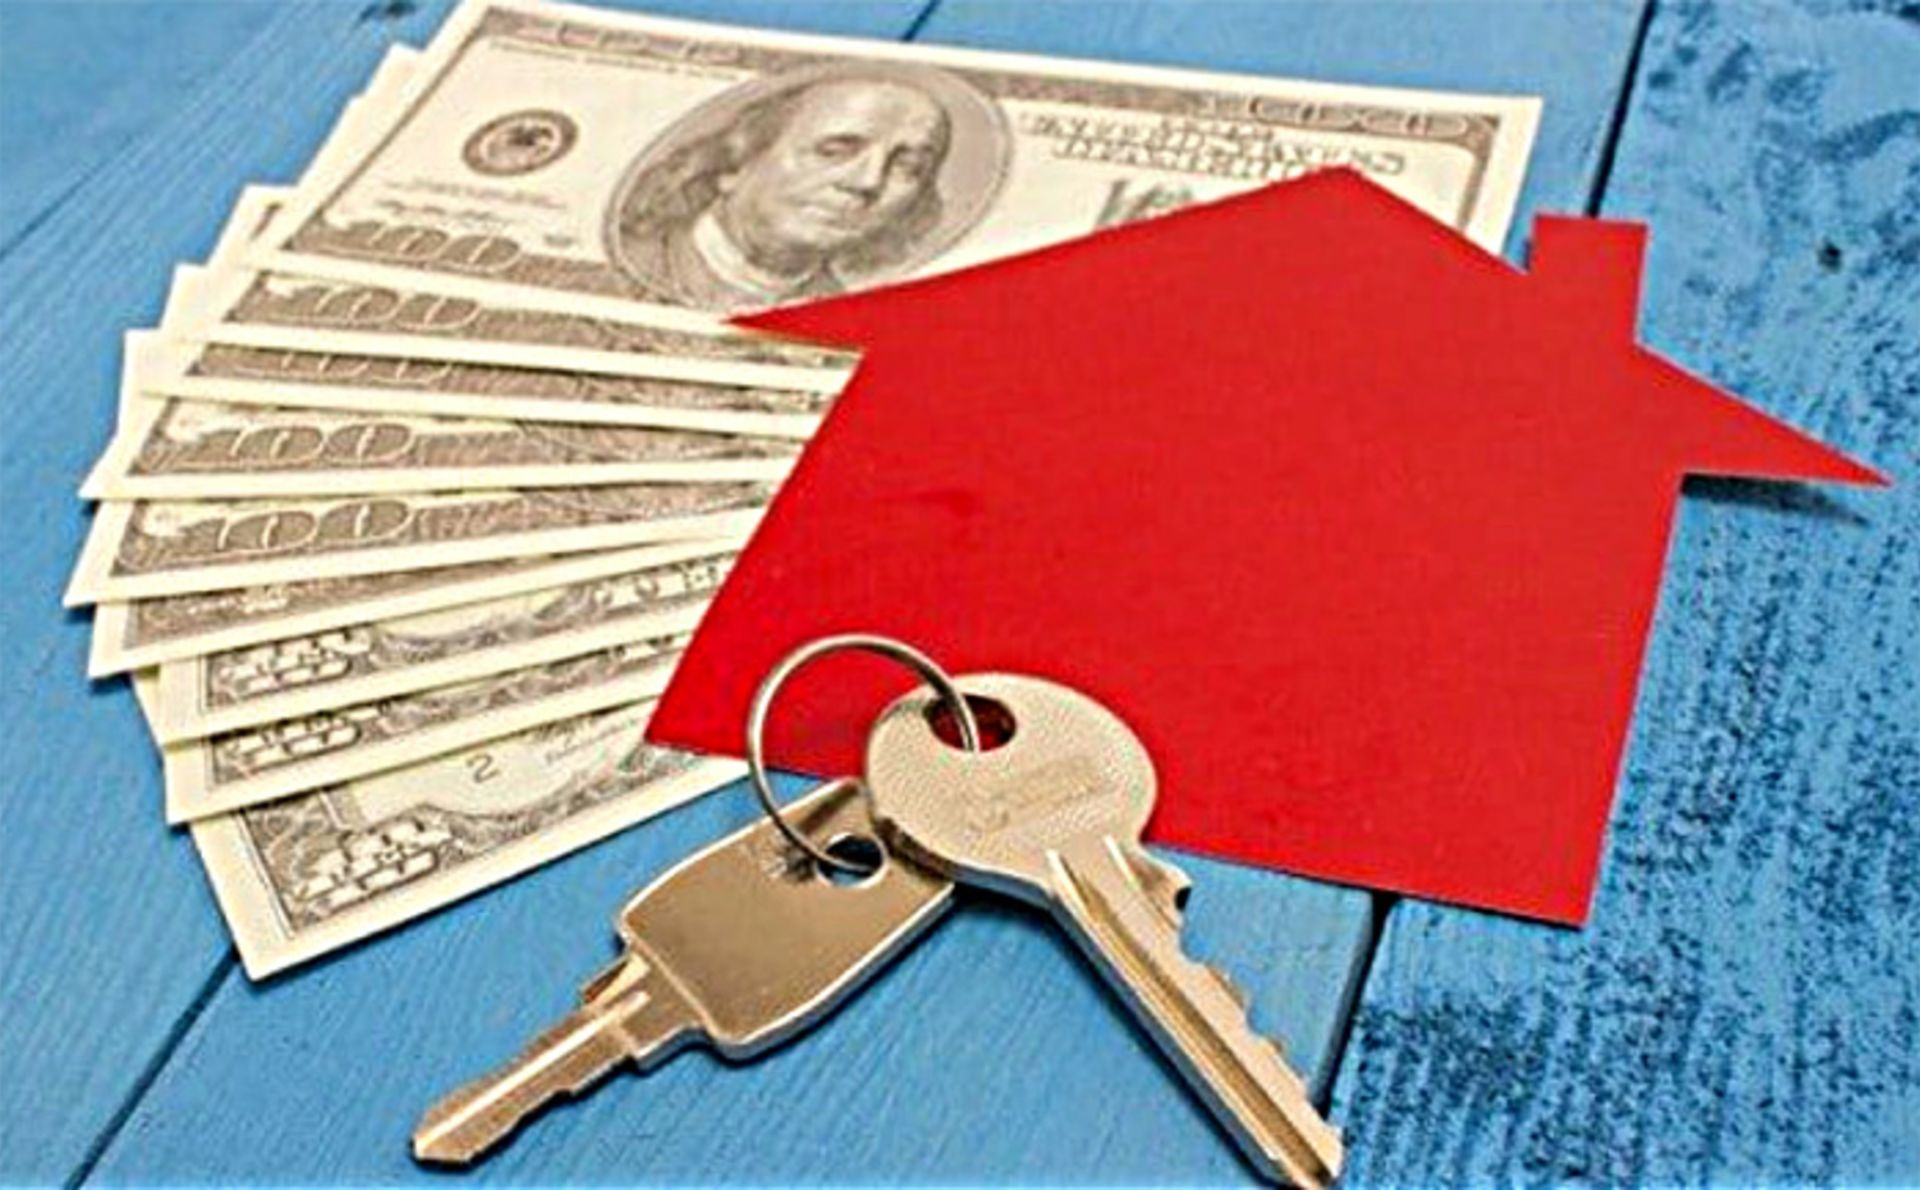 NYS Landlords: Do you know the law for security deposits?